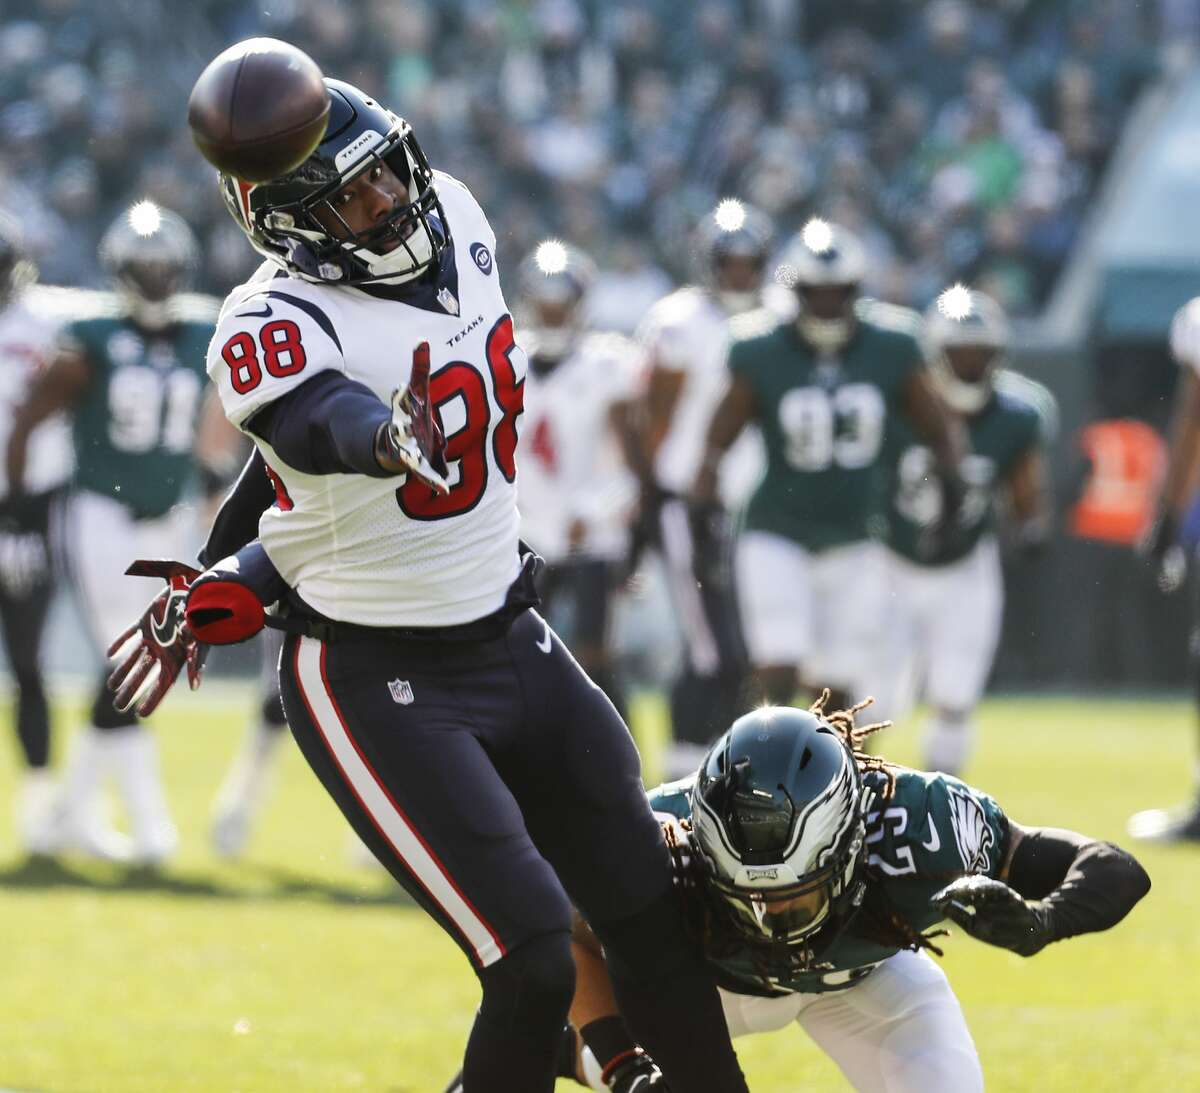 Houston Texans tight end Jordan Akins (88) loses the handled on a pass defended by Philadelphia Eagles free safety Avonte Maddox (29) for an incomplete pass during the first half of an NFL football game at Lincoln Financial Field on Sunday, Dec. 23, 2018, in Philadelphia.